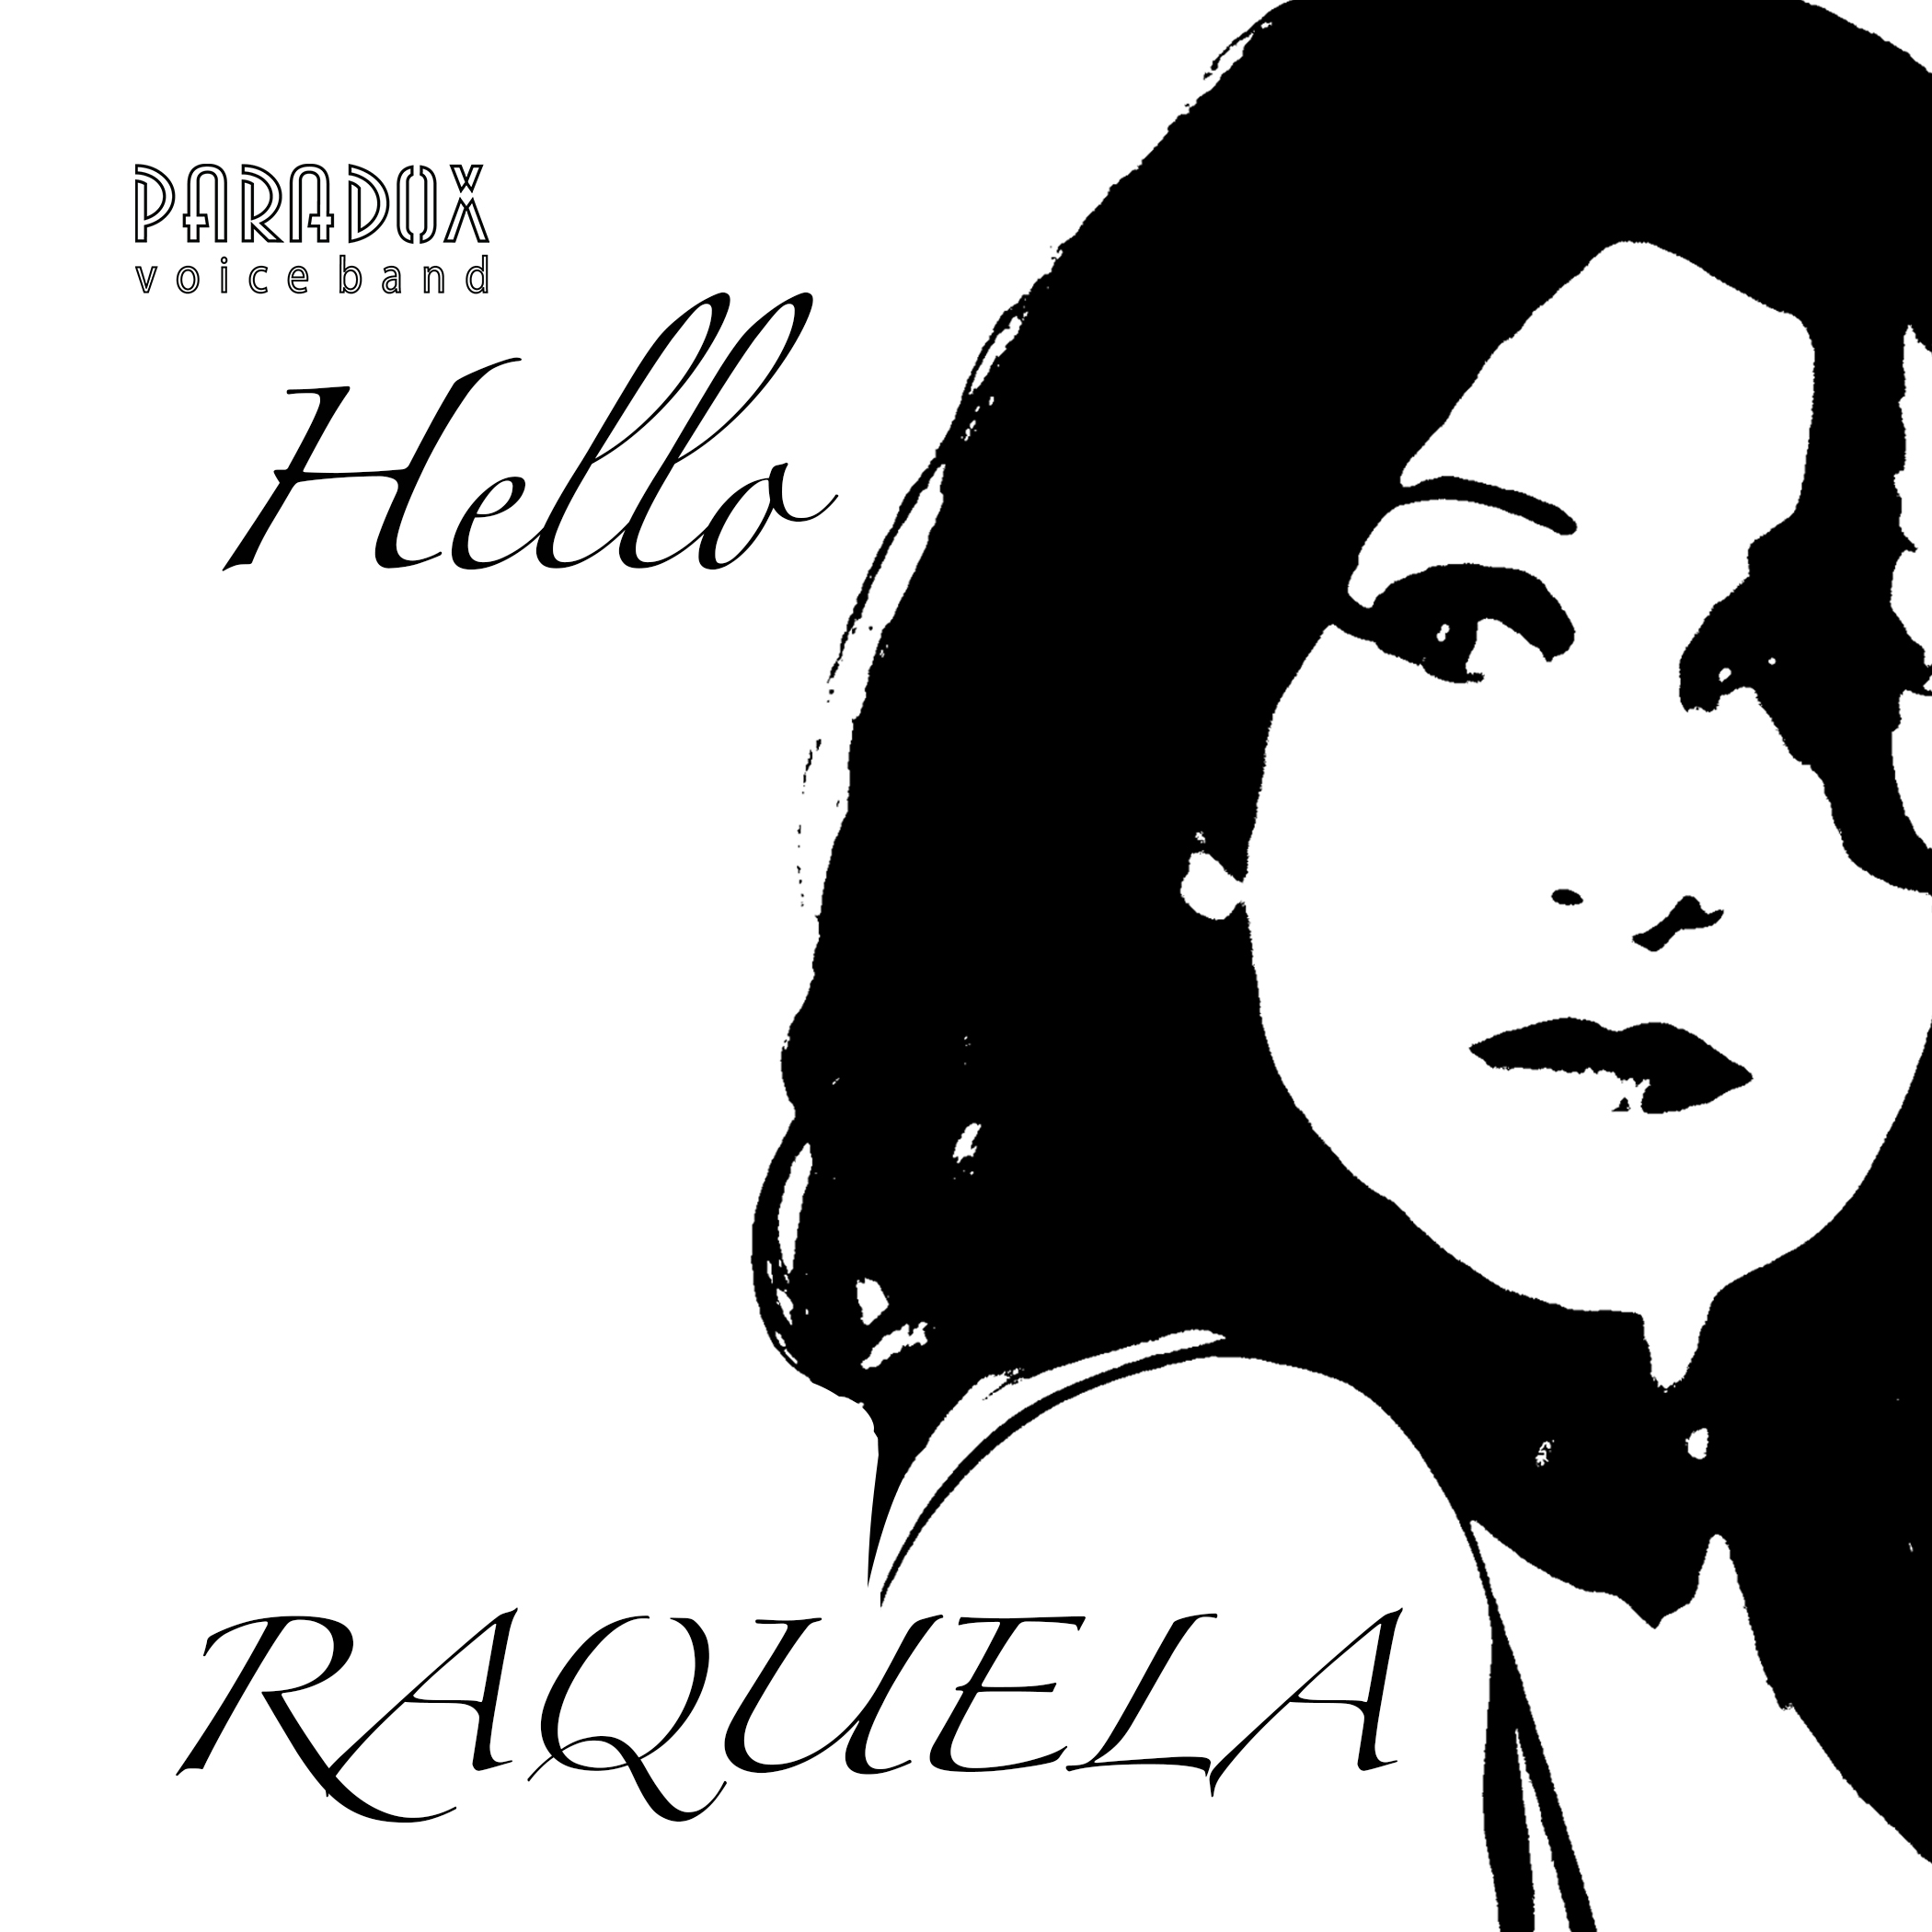 HELLO - PVB ft. RAQUELA